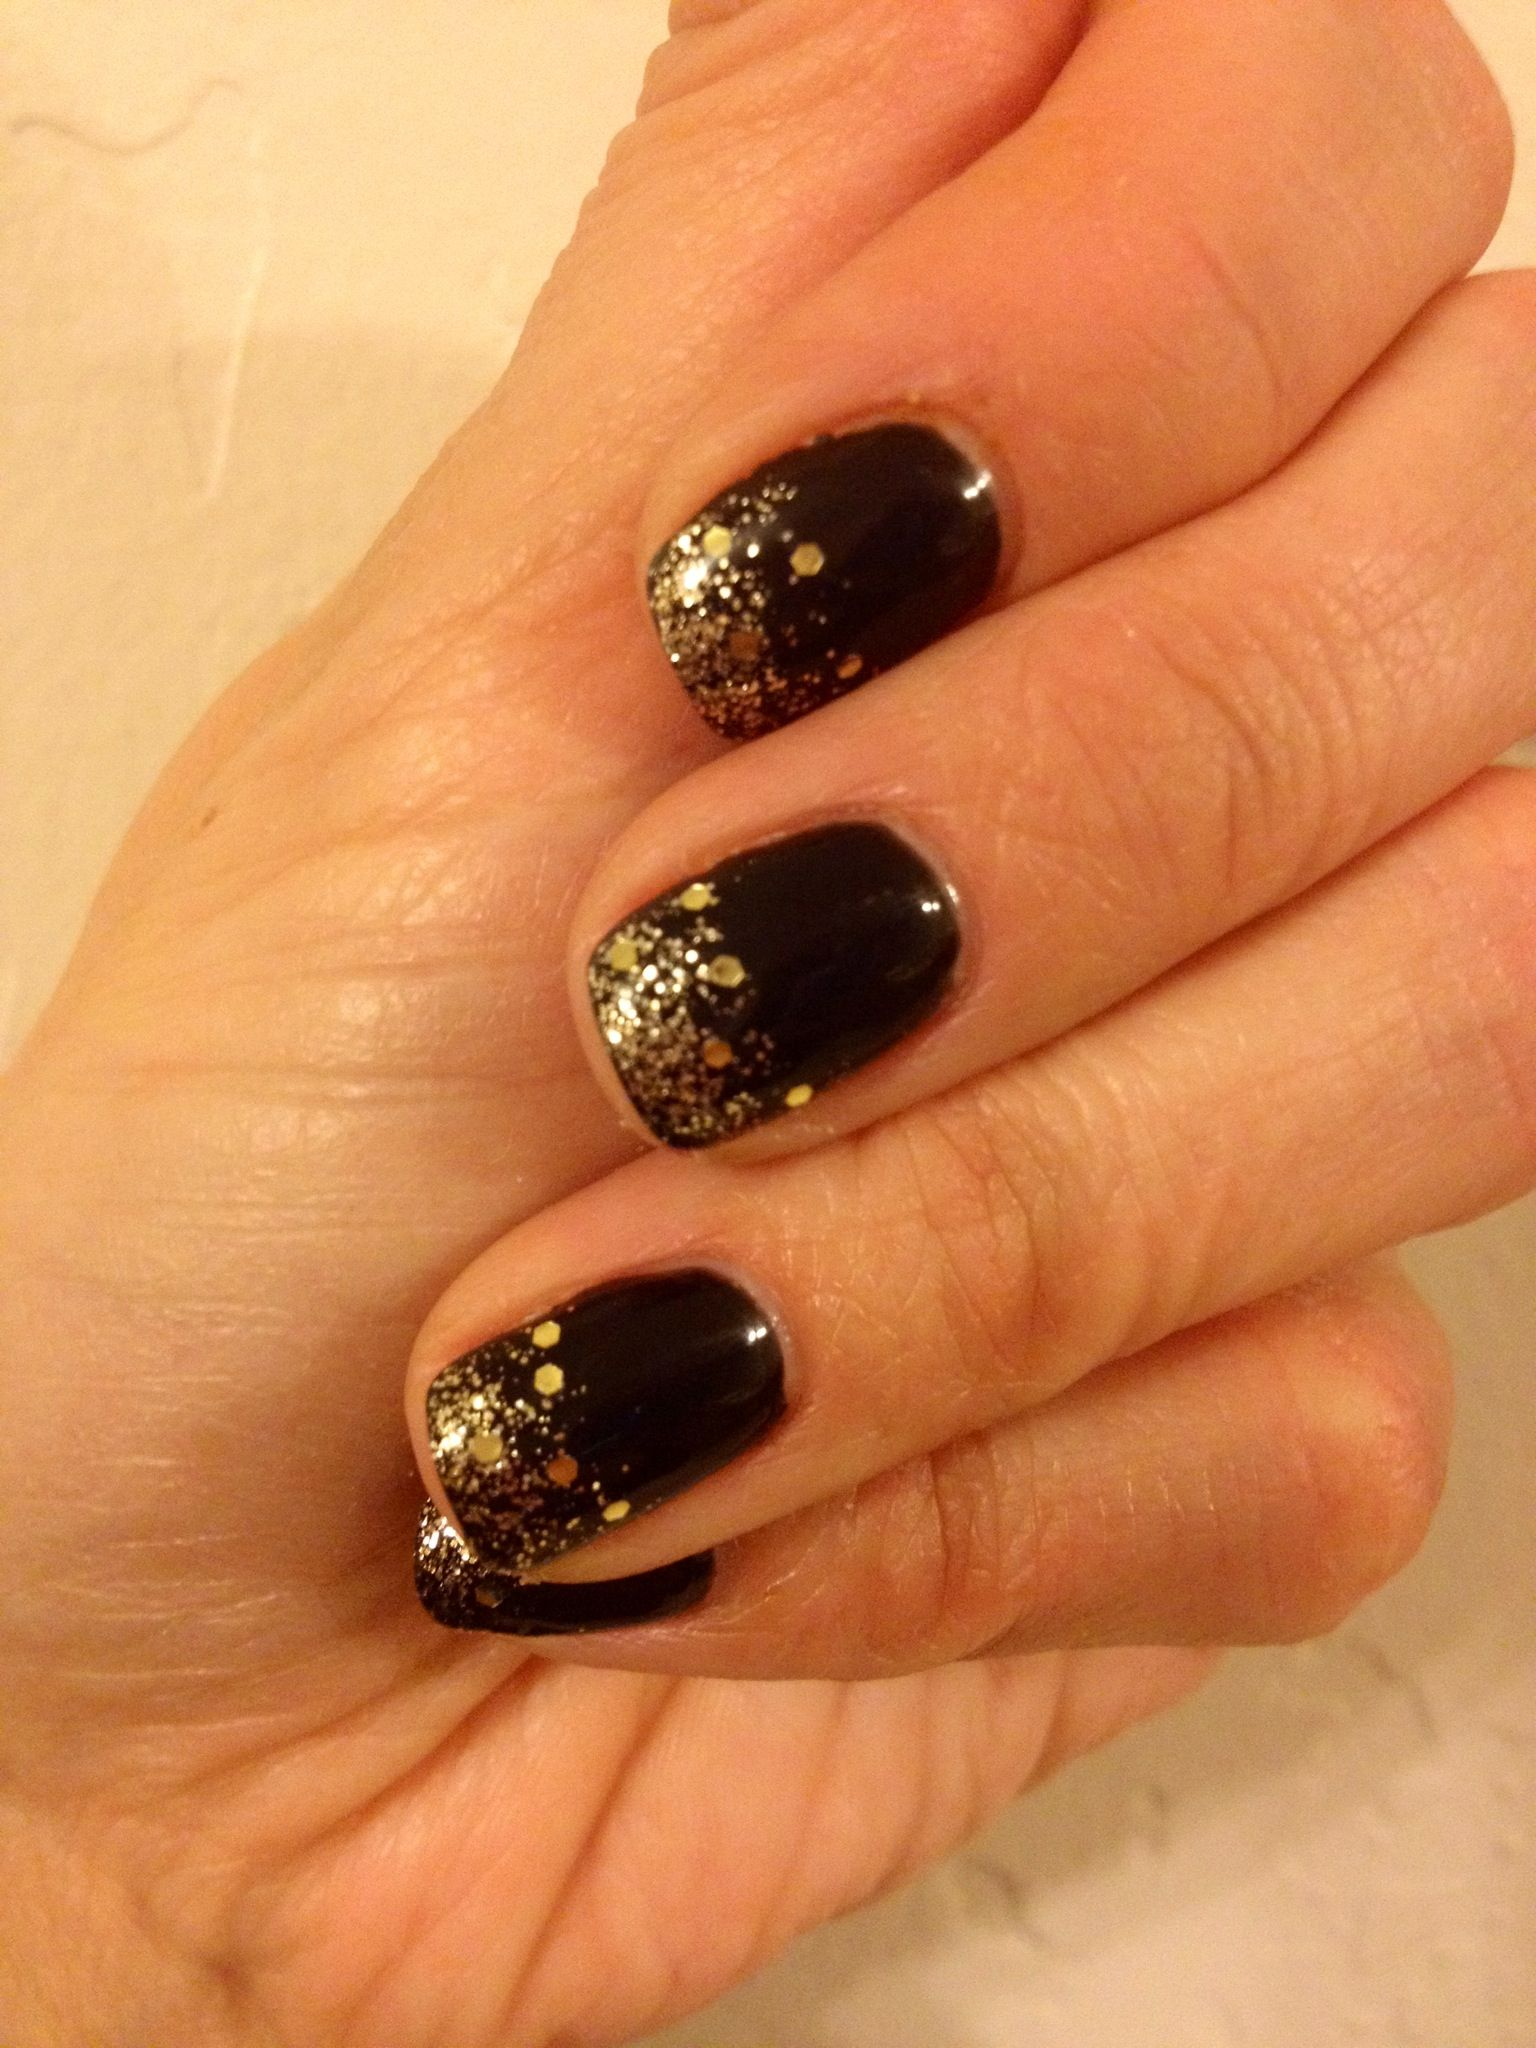 Glitter Gold Sparkle Fade New Year S Eve Shellac Nail Design Back Gold Fade Glitter Cute Nails G Christmas Nails Glitter Glitter Gel Nails Shellac Nails